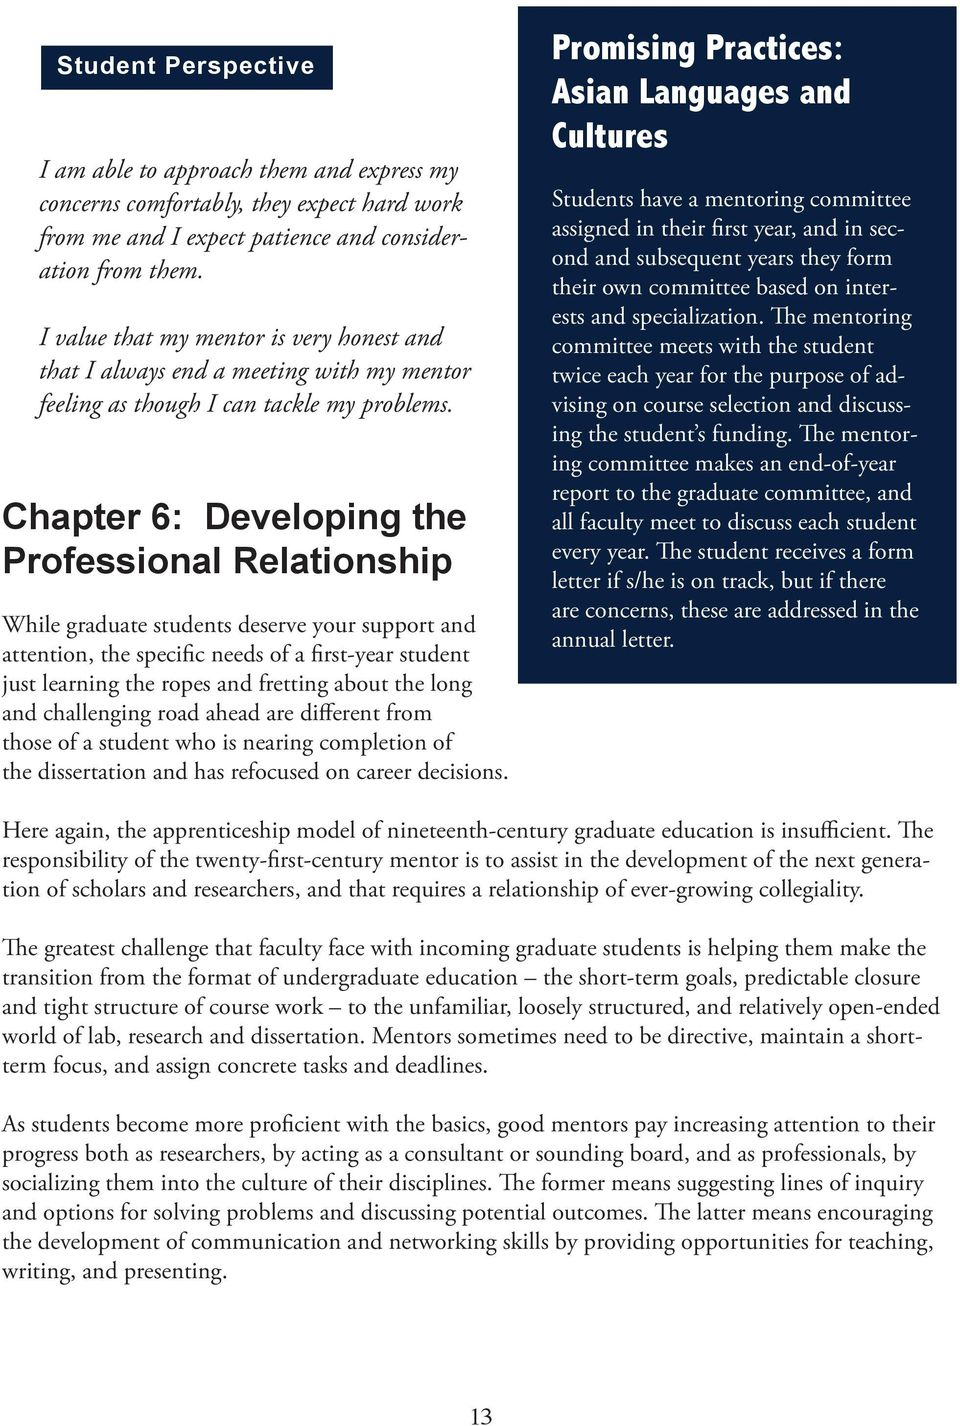 Chapter 6: Developing the Professional Relationship While graduate students deserve your support and attention, the specific needs of a first-year student just learning the ropes and fretting about